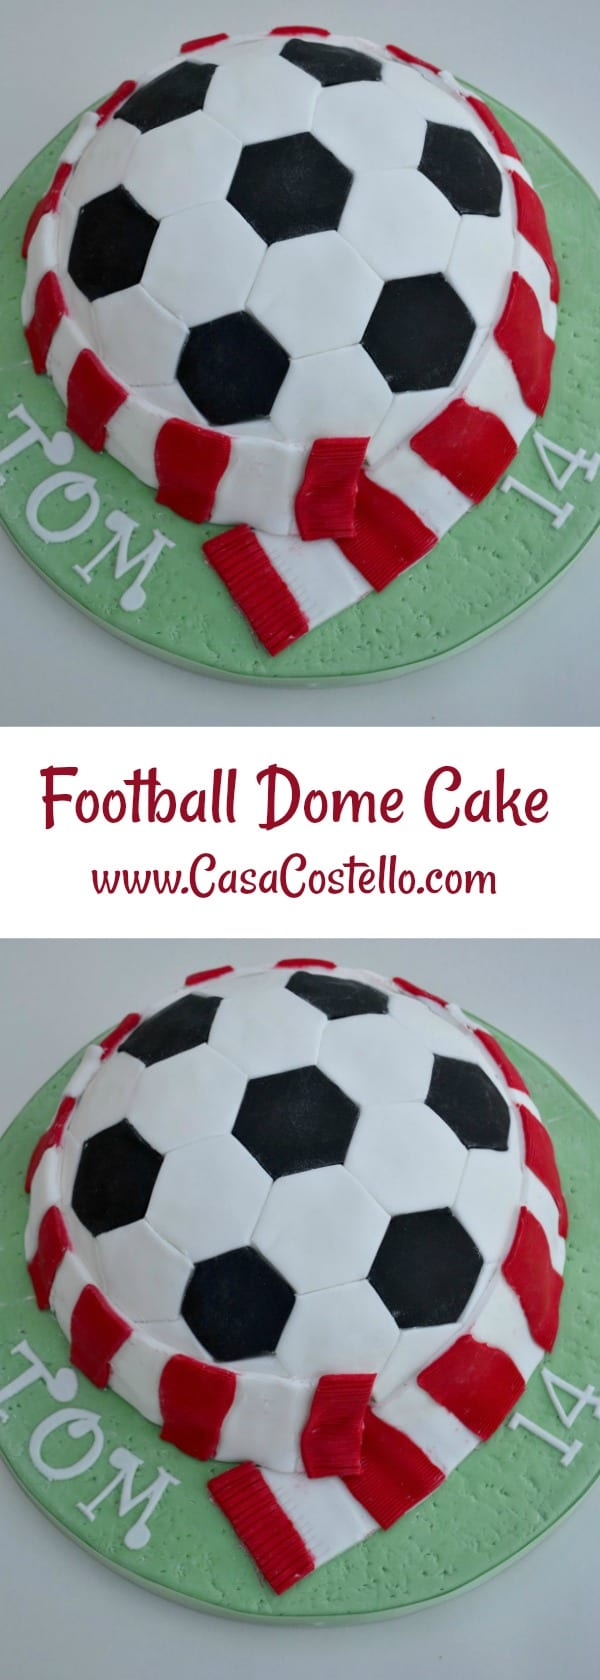 Football Dome Cake Novelty Birthday Cake for a teenage football lover